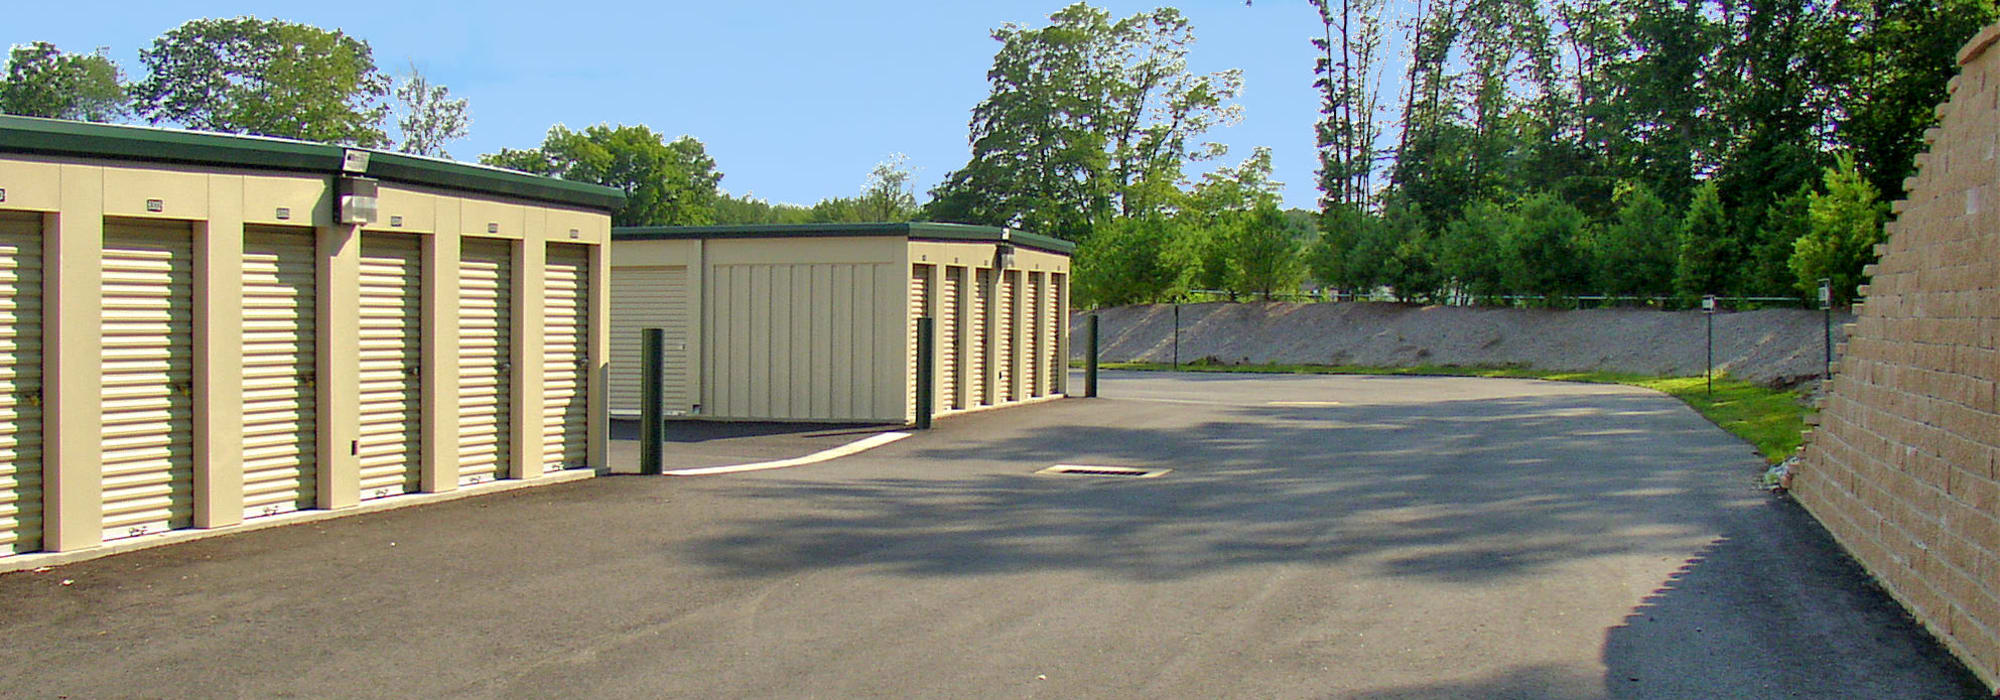 Pepper Street Park Self Storage in Monroe, CT